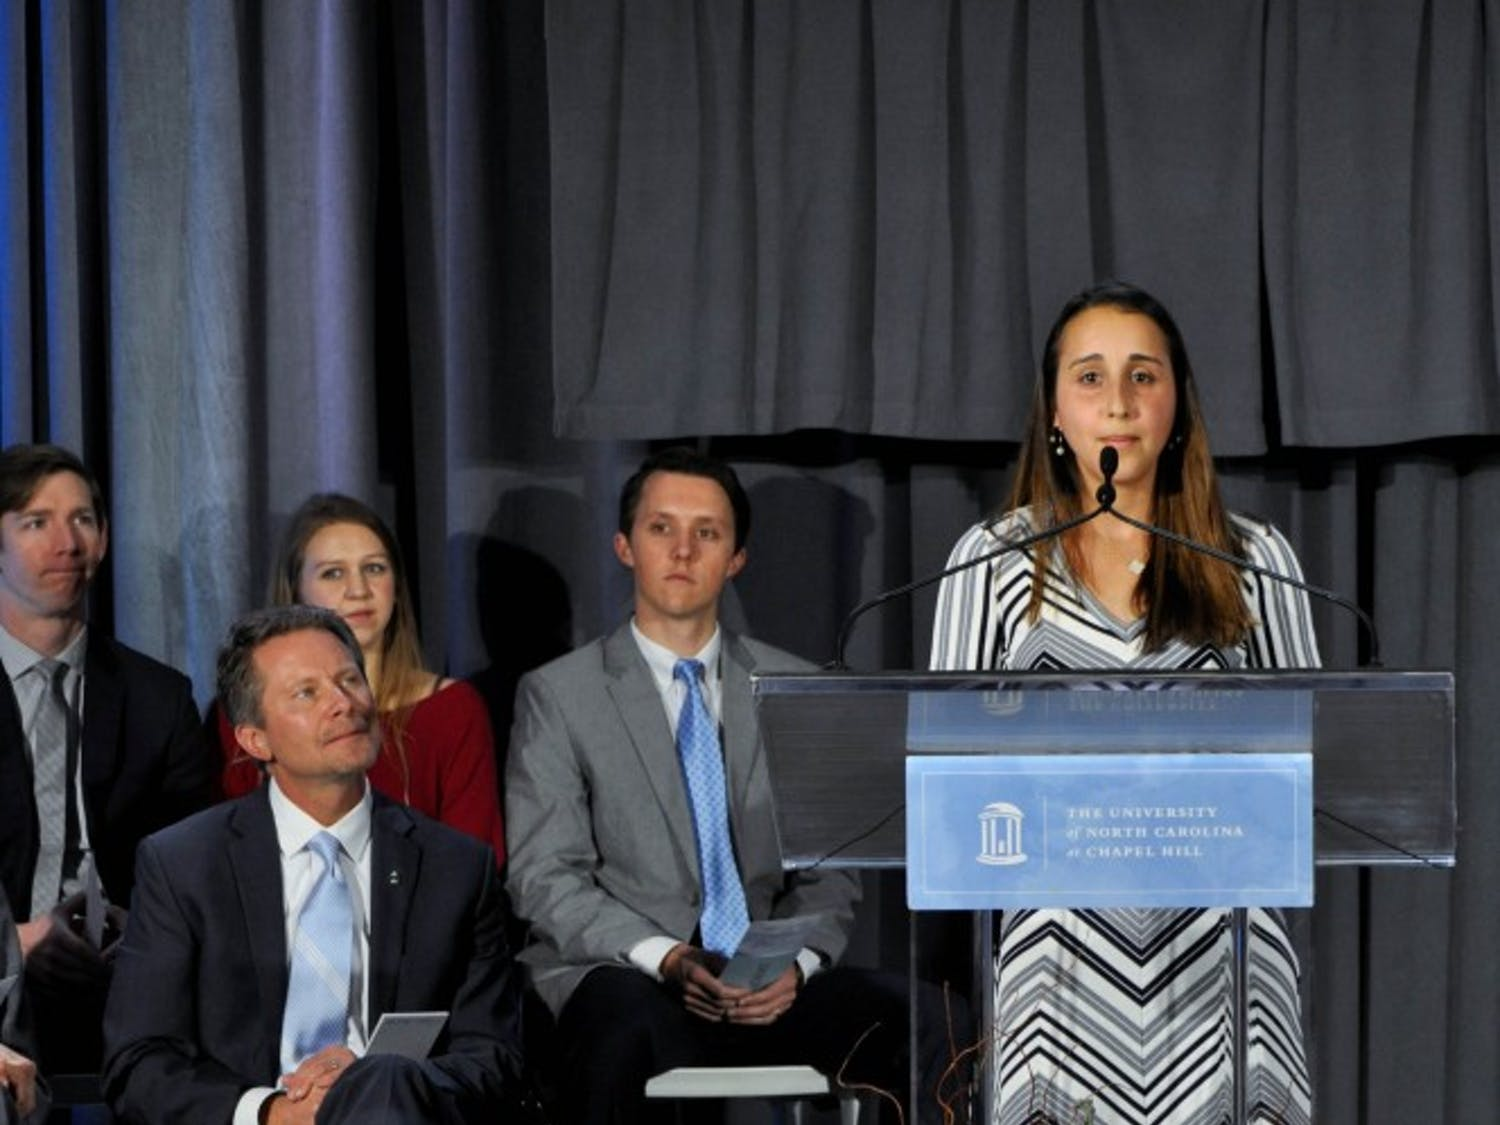 """Second-year student at the School of Dentistry and a recipient of the Dr. Claude A. Adams Jr. scholarship Pegah Khosravi-Kamrani speaks at the announcement of a $27.68 million gift to UNC's School of Dentistry in the Koury Oral Health Sciences building on Wednesday, Feb. 20, 2019. """"I pledge to use dentistry as a means to serve others facing dental hardships,"""" said Khosravi-Kamrani during her remarks."""